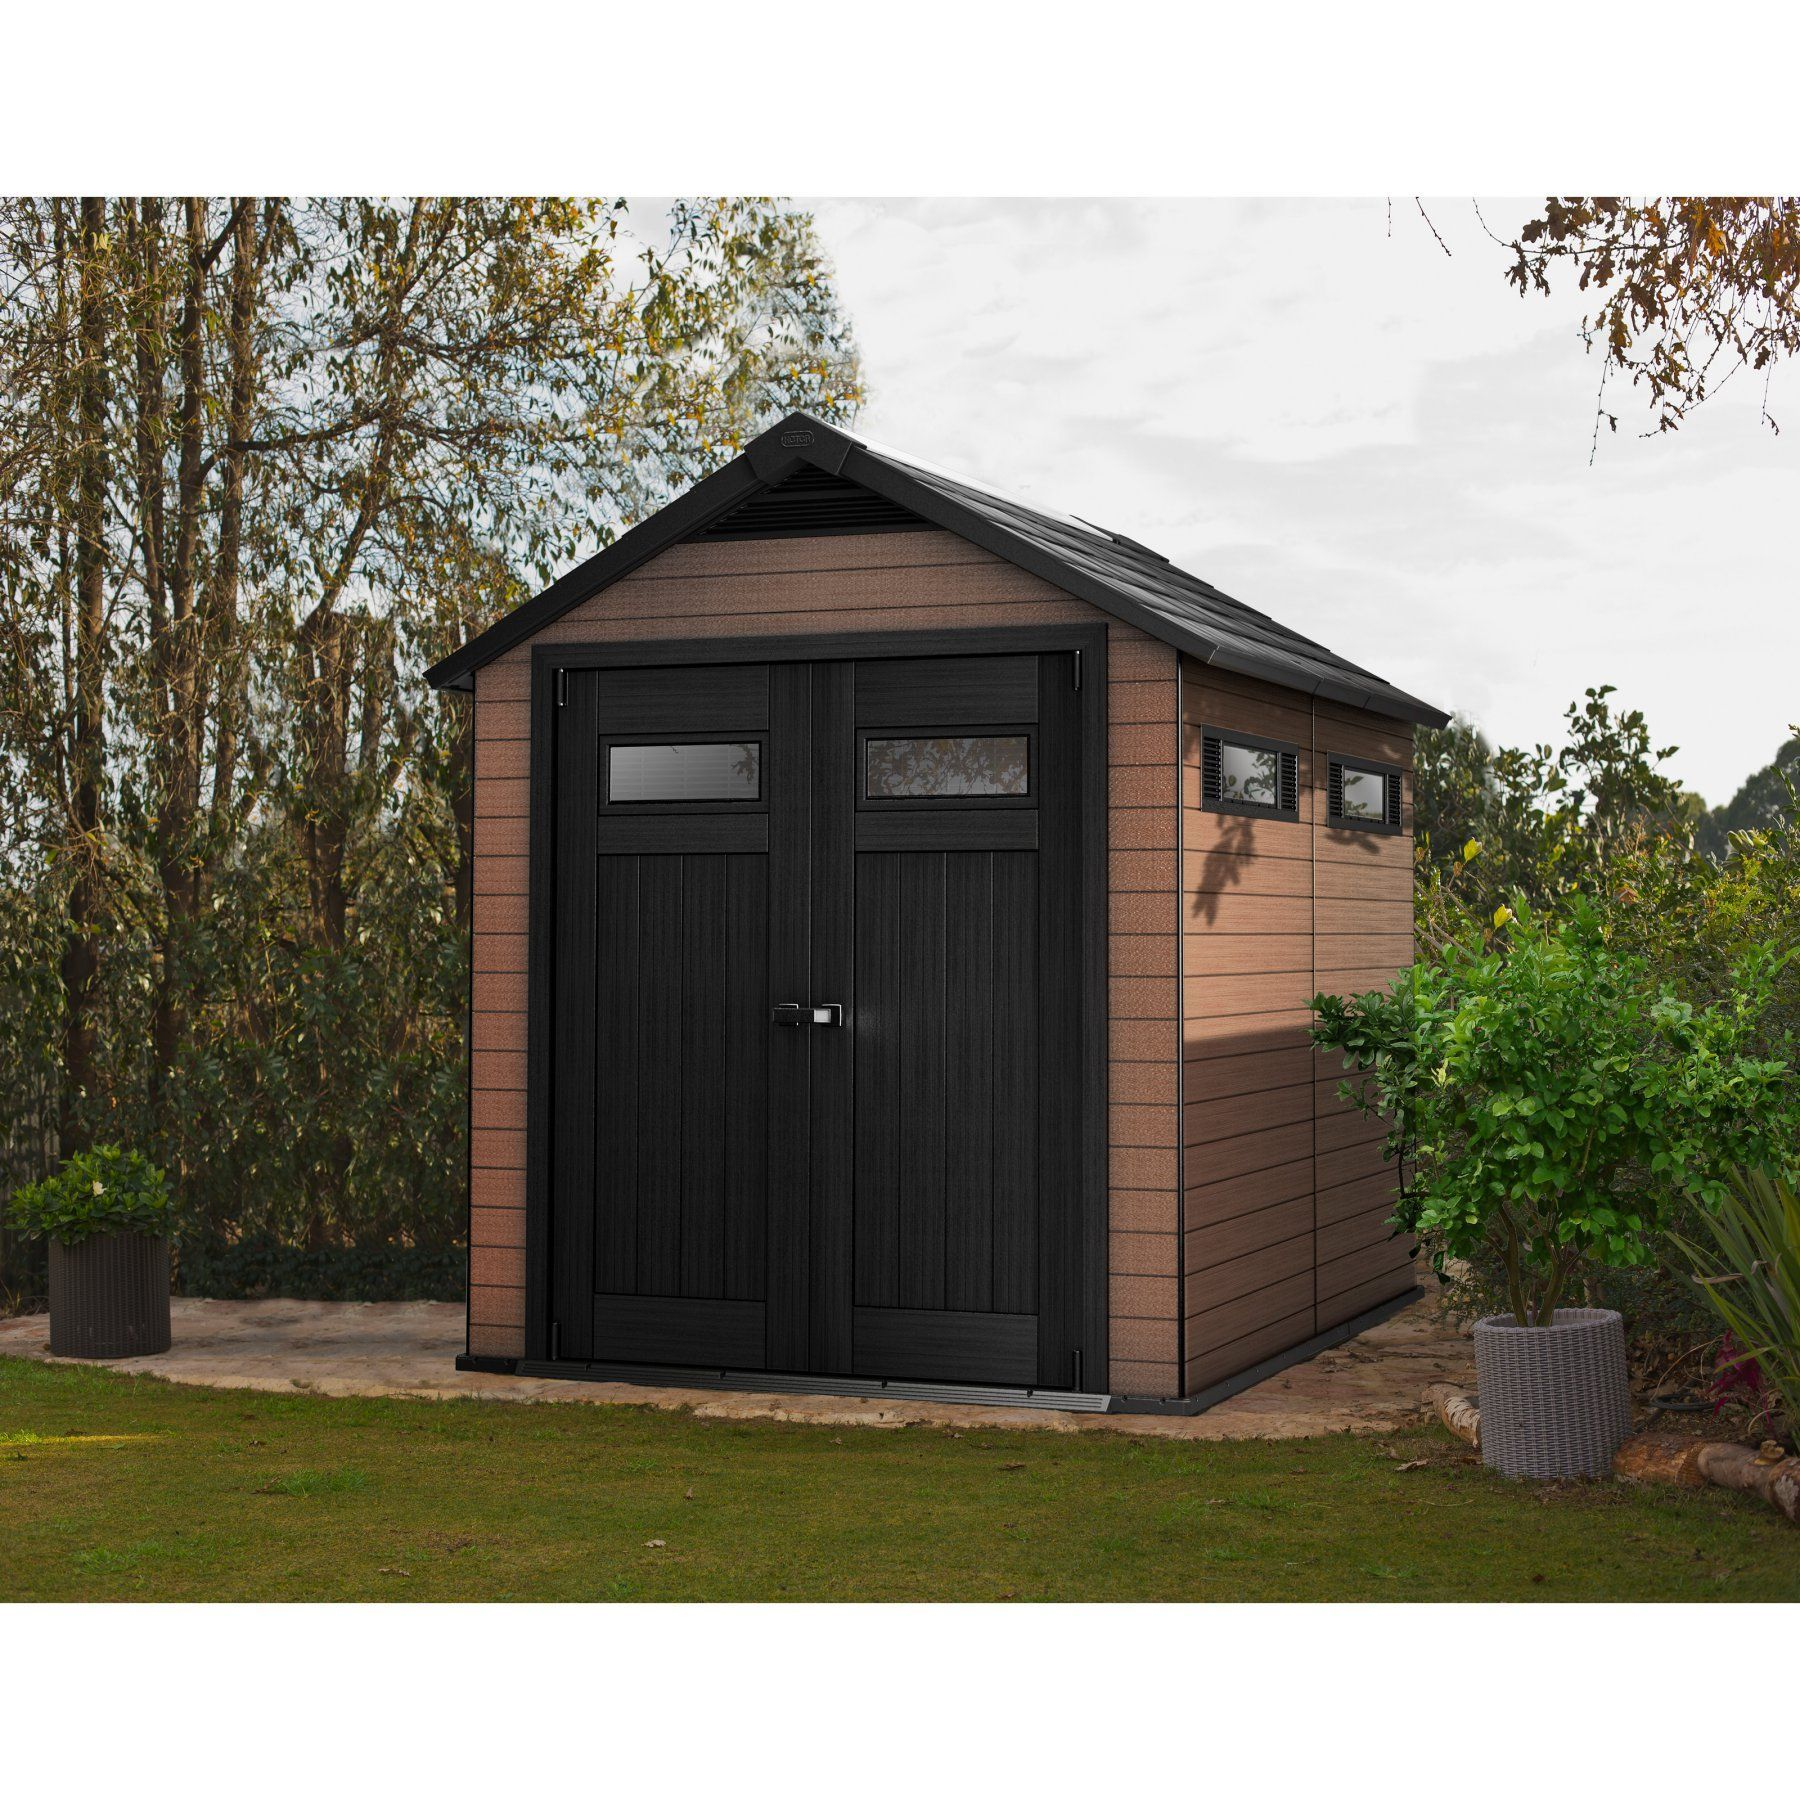 Keter Fusion Large 7 5 X 9 Ft Storage Shed 224449 Outdoor Storage Sheds Diy Storage Shed Plans Building A Shed